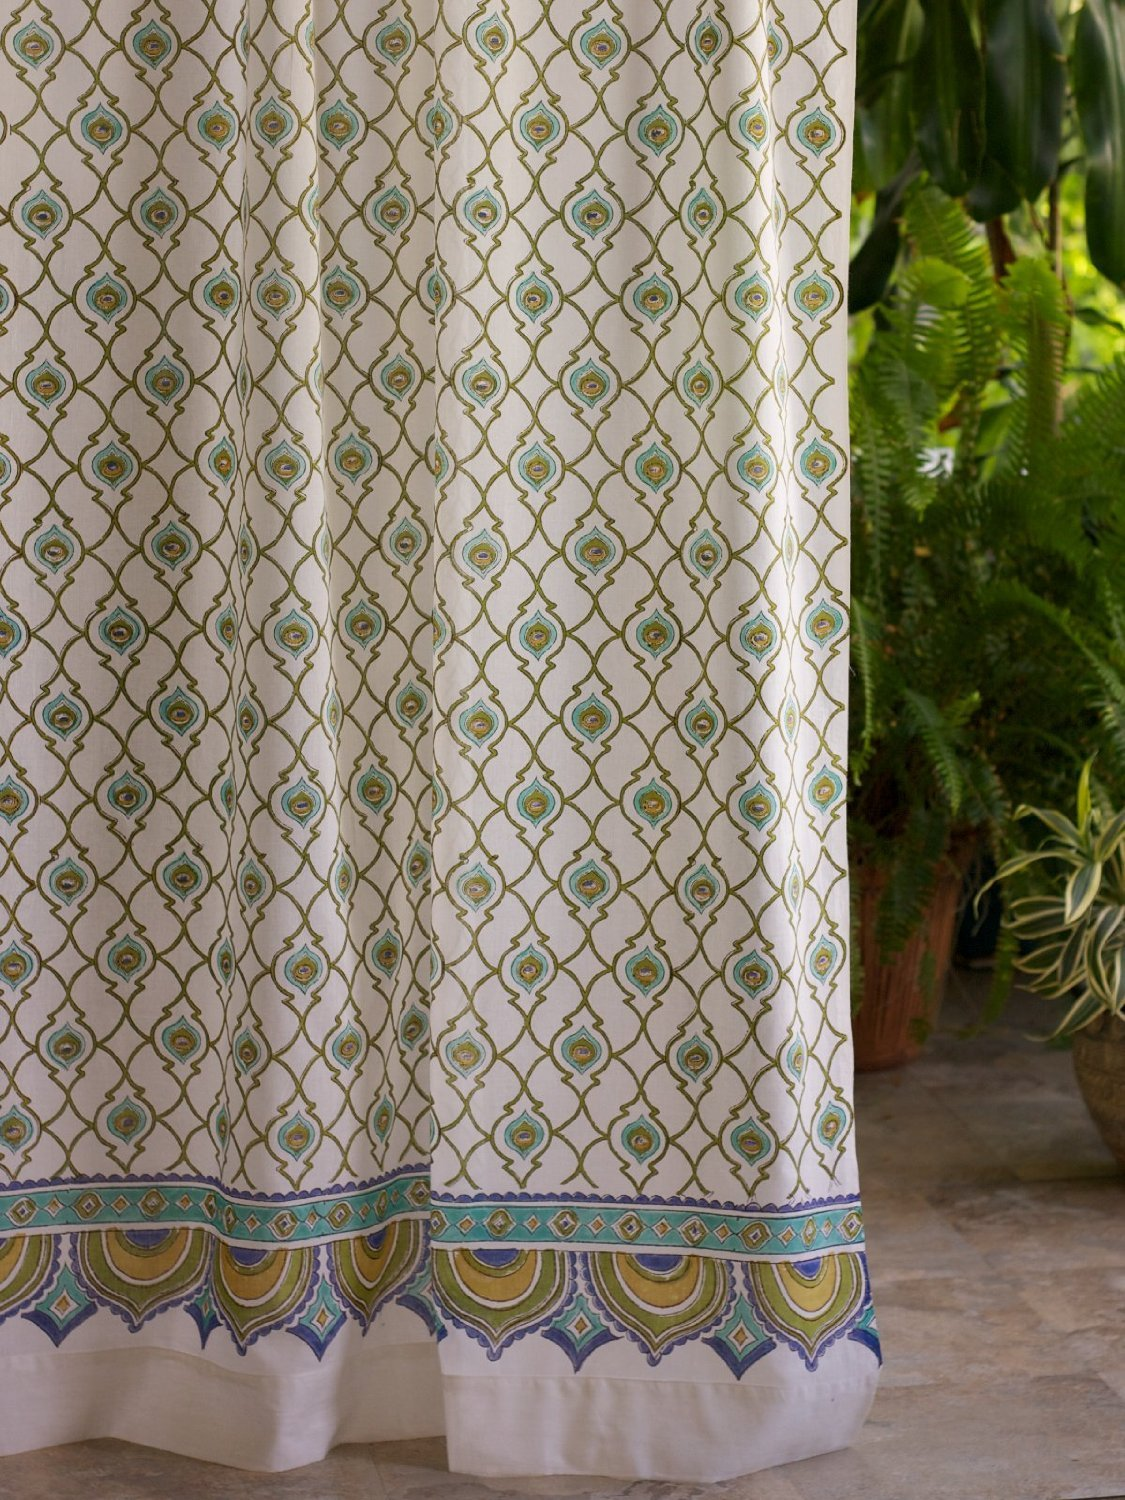 Dance O Peacock (CP) ~ Ivory Peacock Feather Print India Curtain 46x84